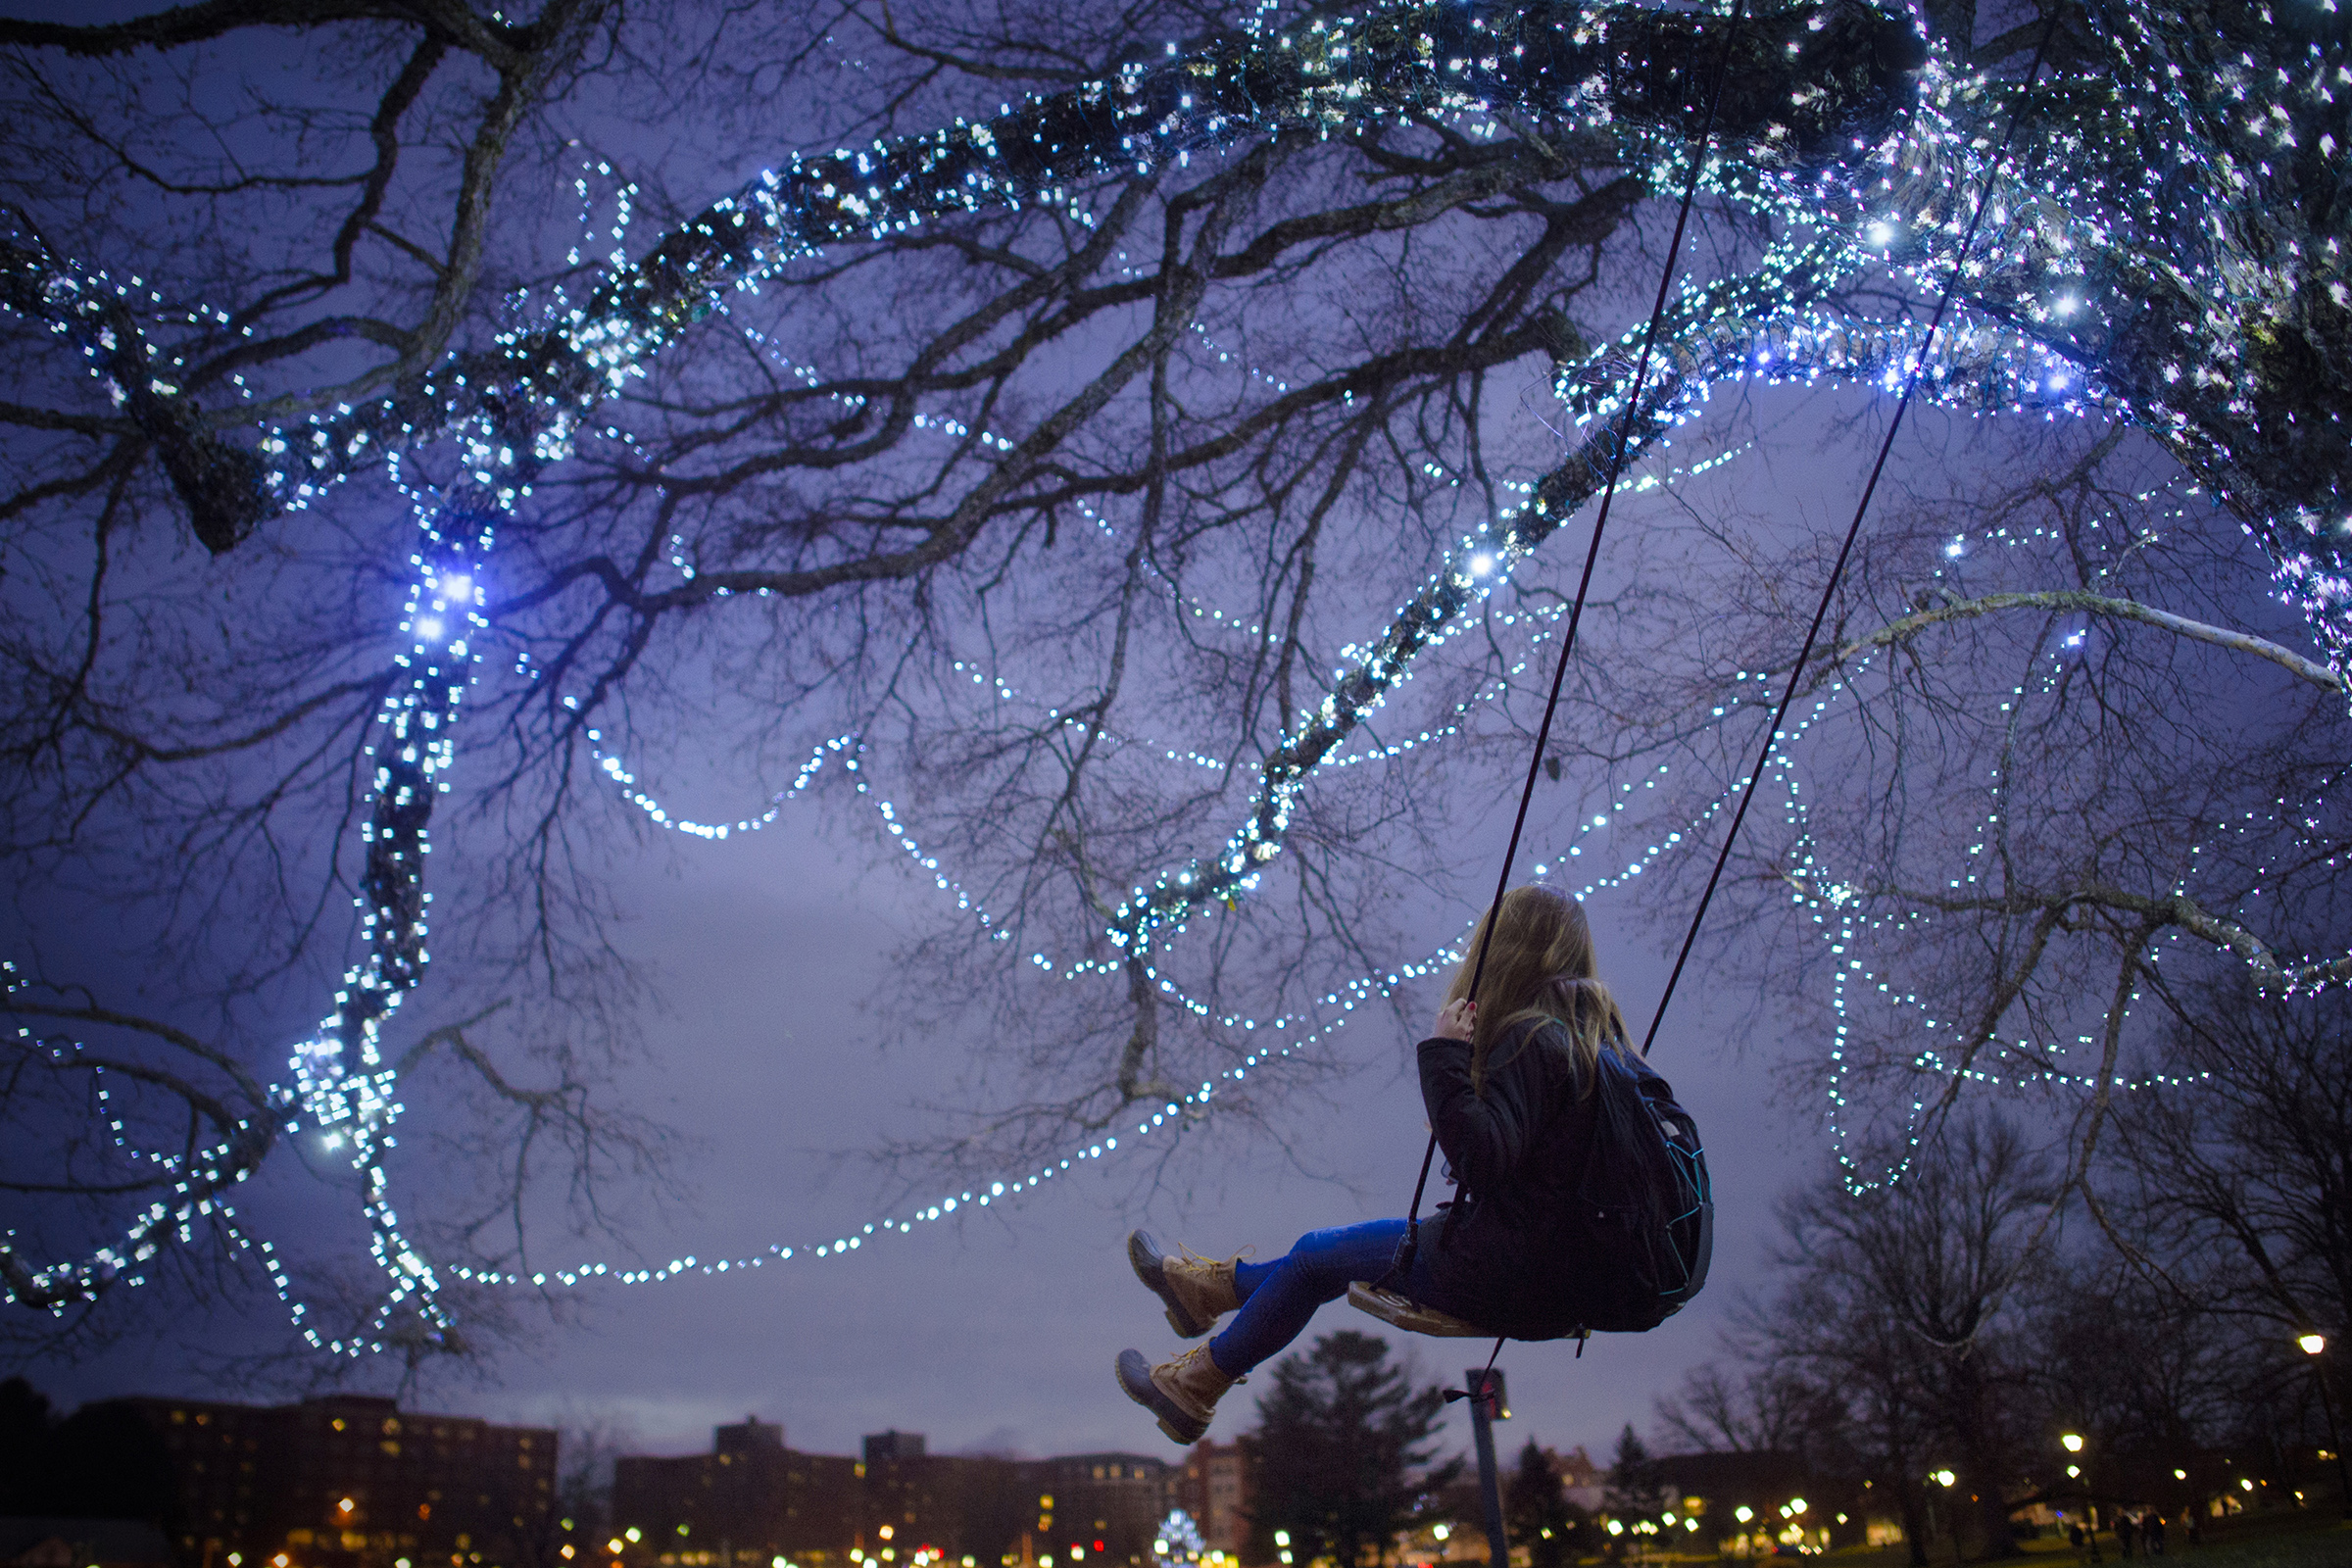 In the week before final semester exams, UConn student Alyssa Czerwinski takes a break between classes to look out over Mirror Lake to swing from the campus' so-called 'swing-tree.' (Mark Mirko/Hartford Courant Photo)